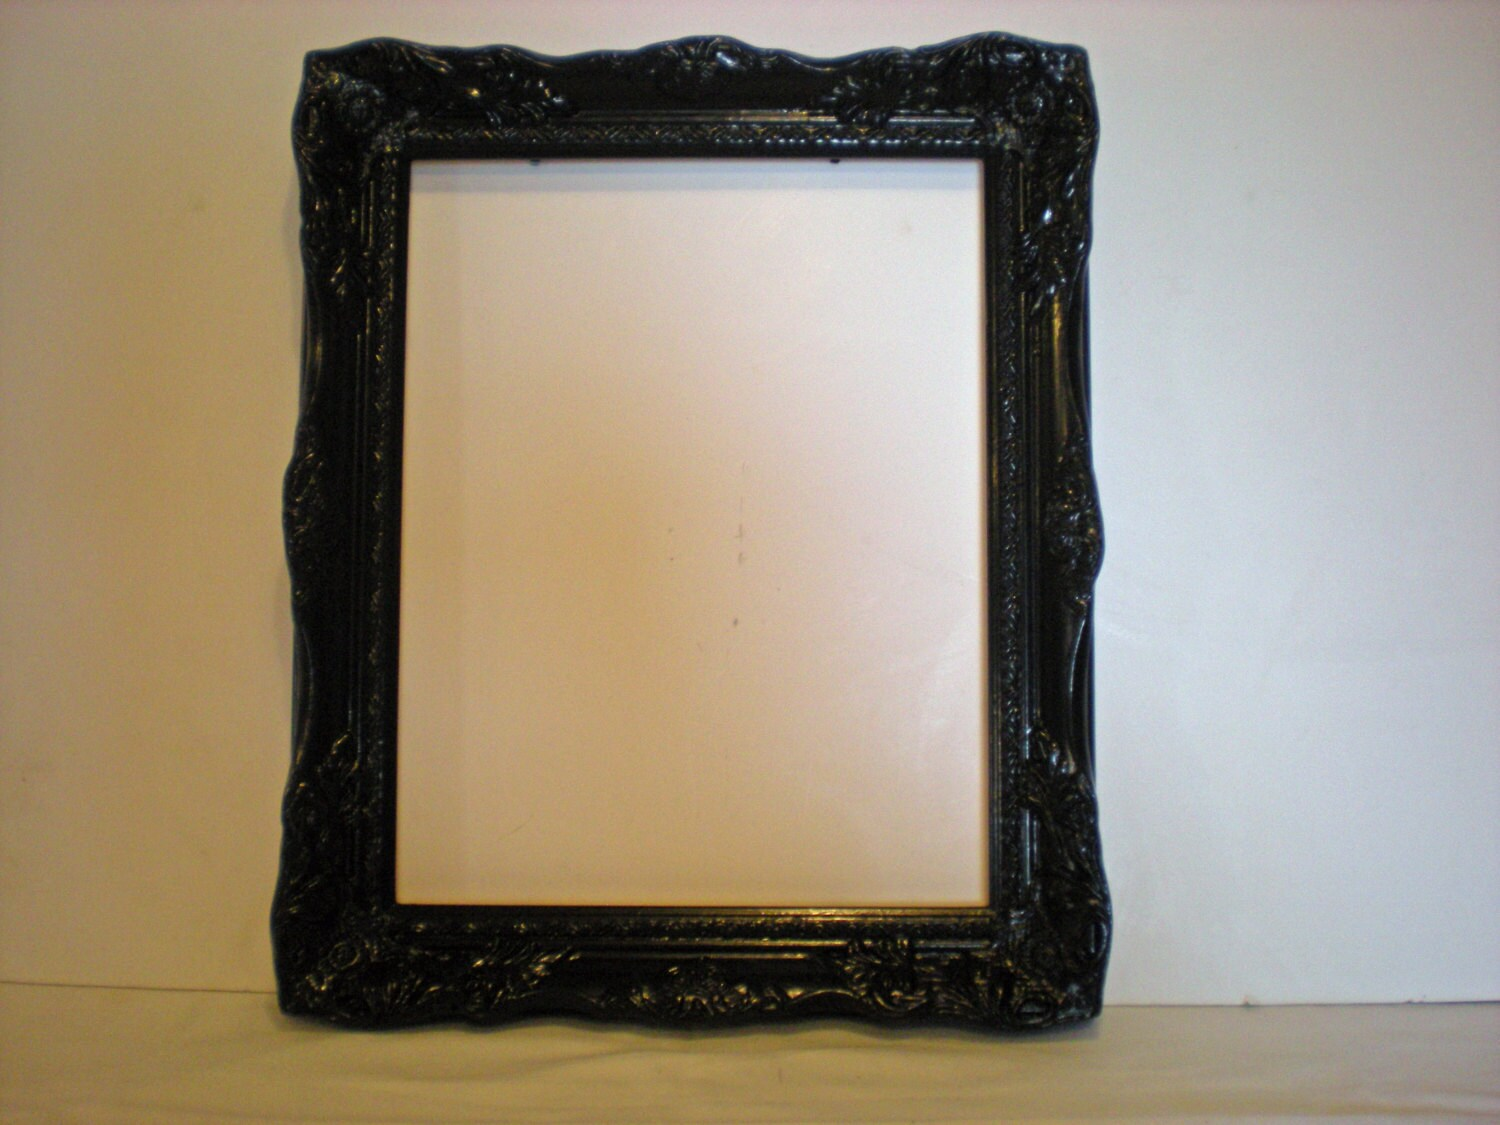 11x14 black picture frame